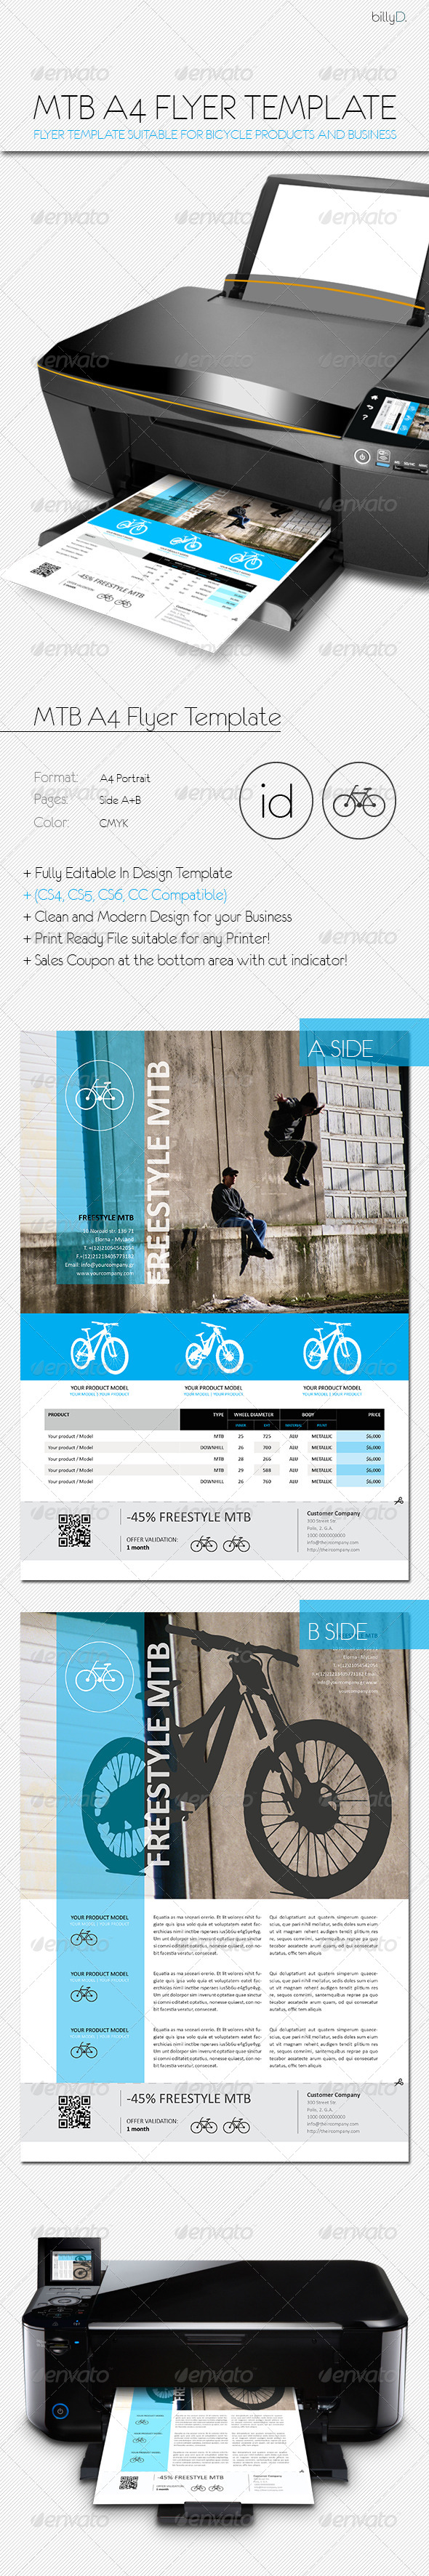 GraphicRiver MTB A4 Flyer Template 8136865